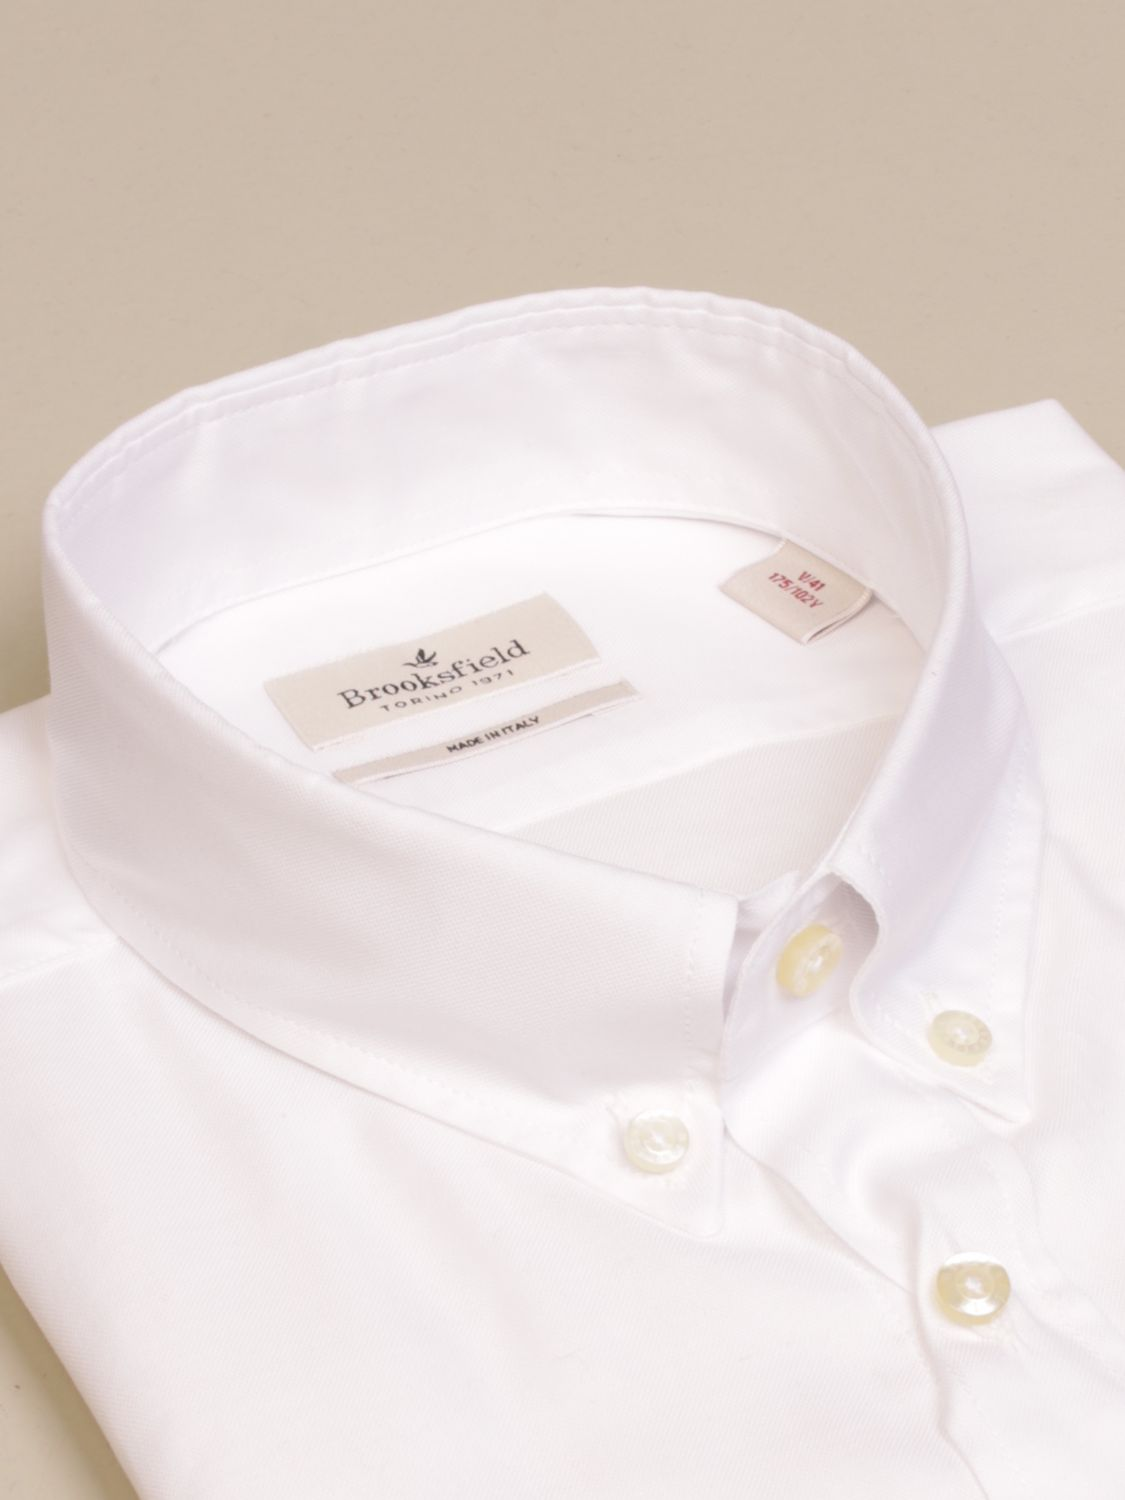 Shirt Brooksfield: Brooksfield shirt with button down collar white 2